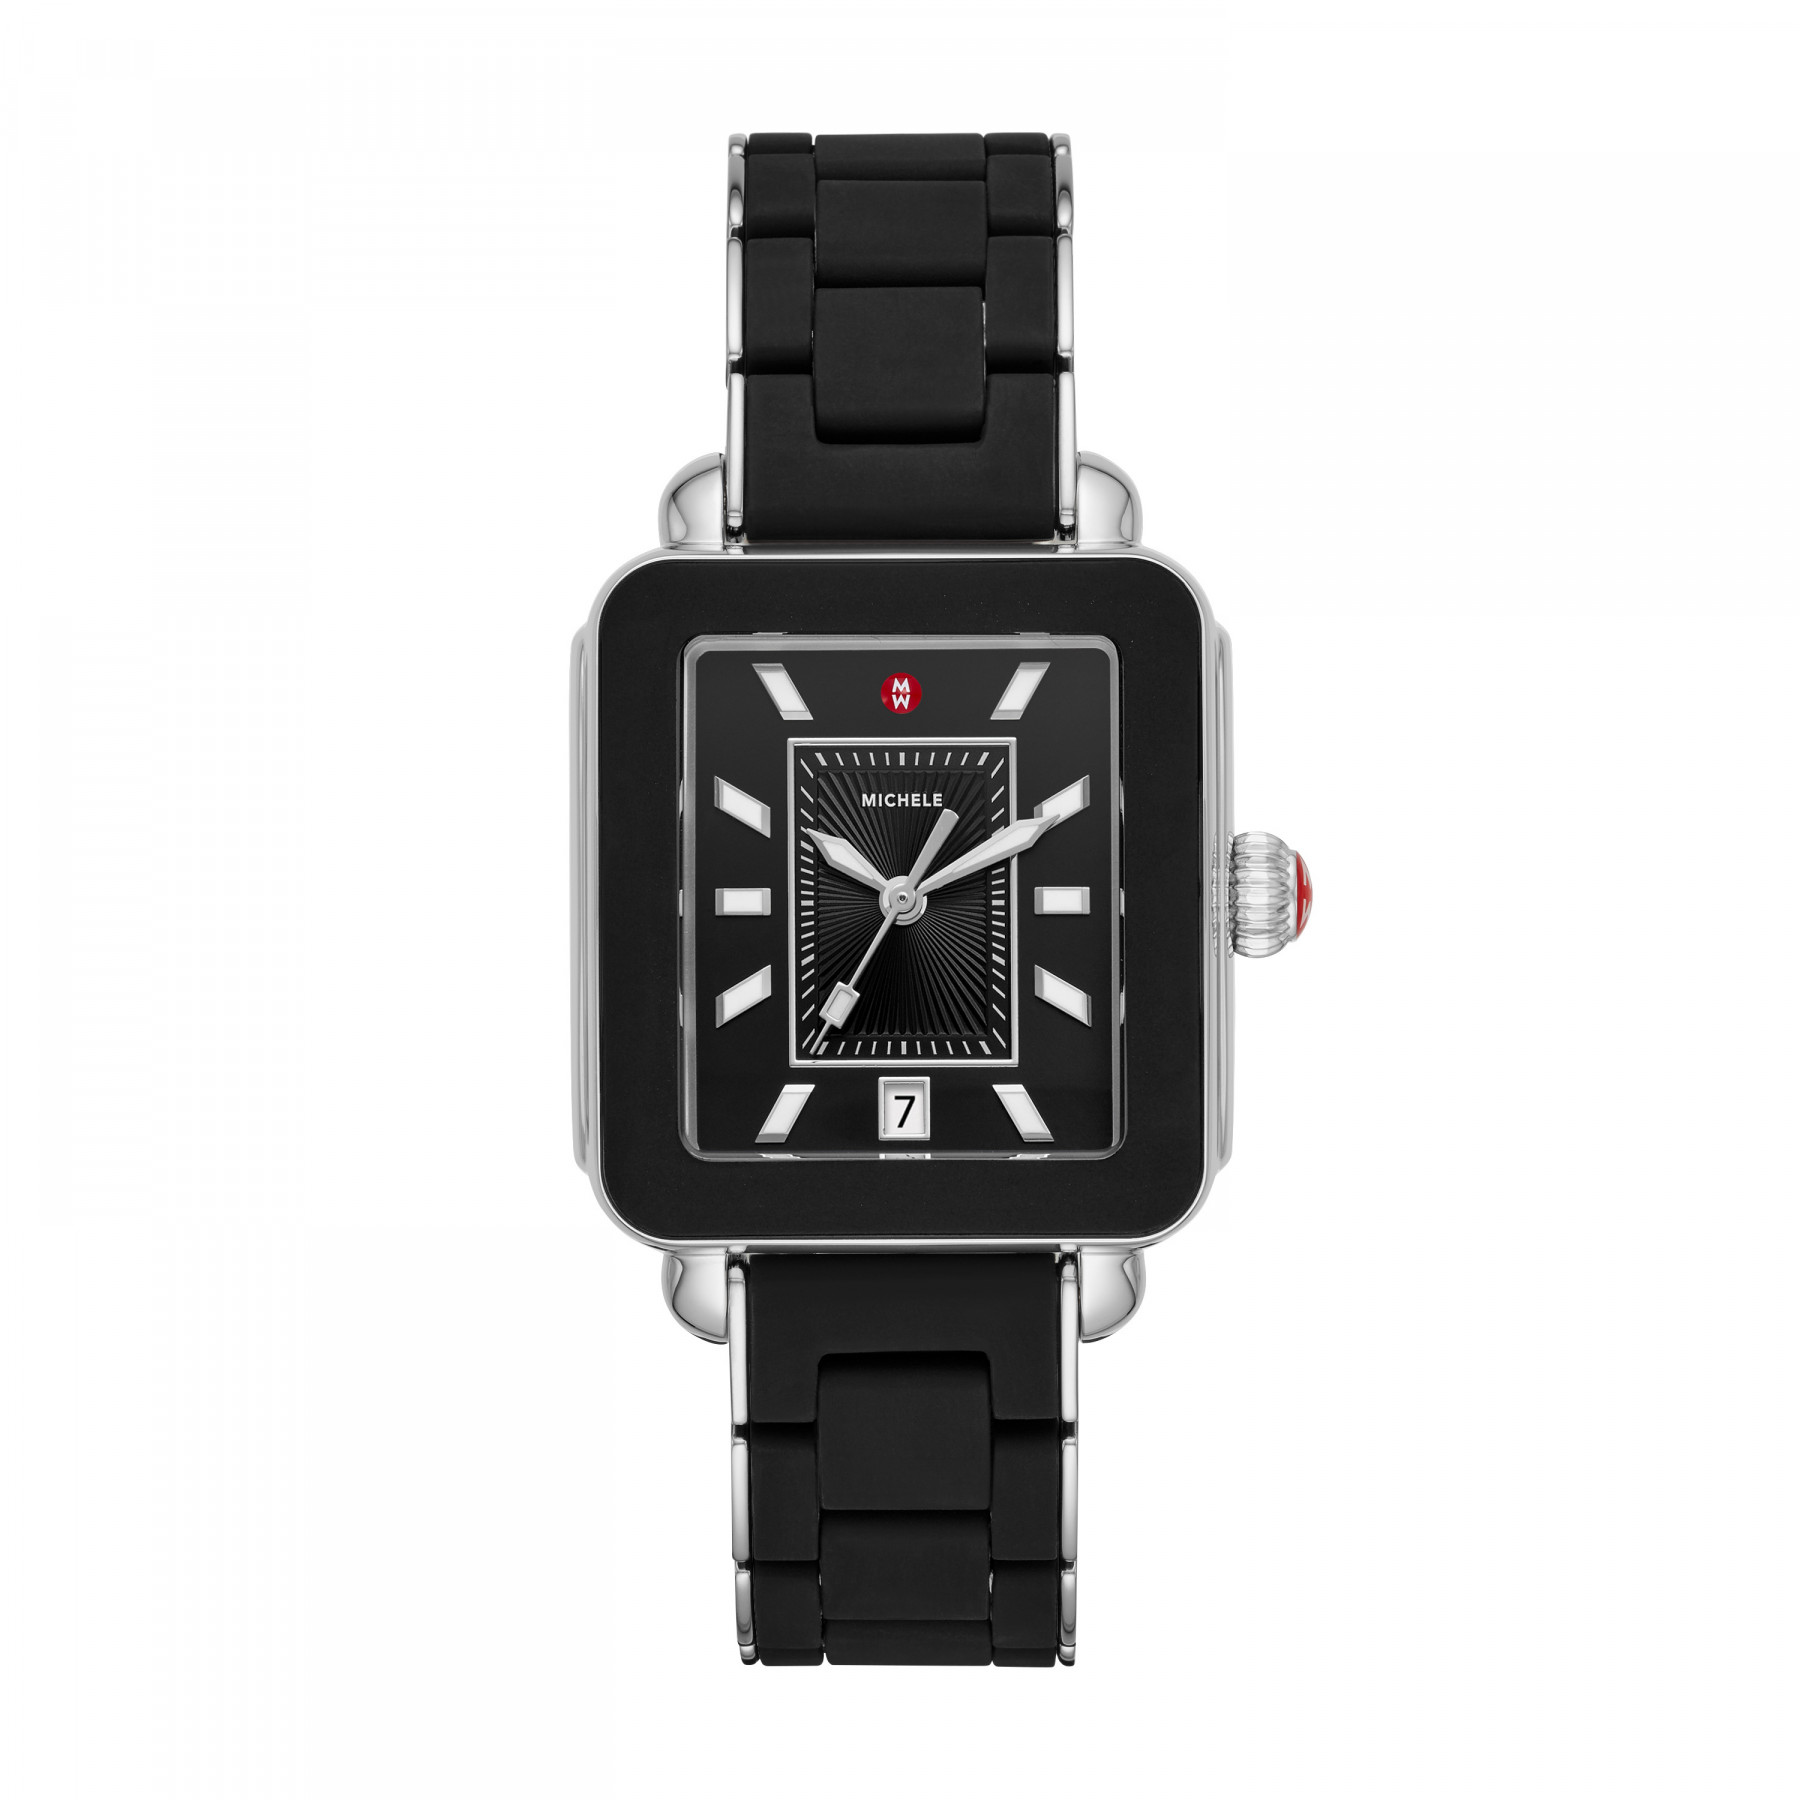 Michele Deco Sport Black and Silver Watch front view